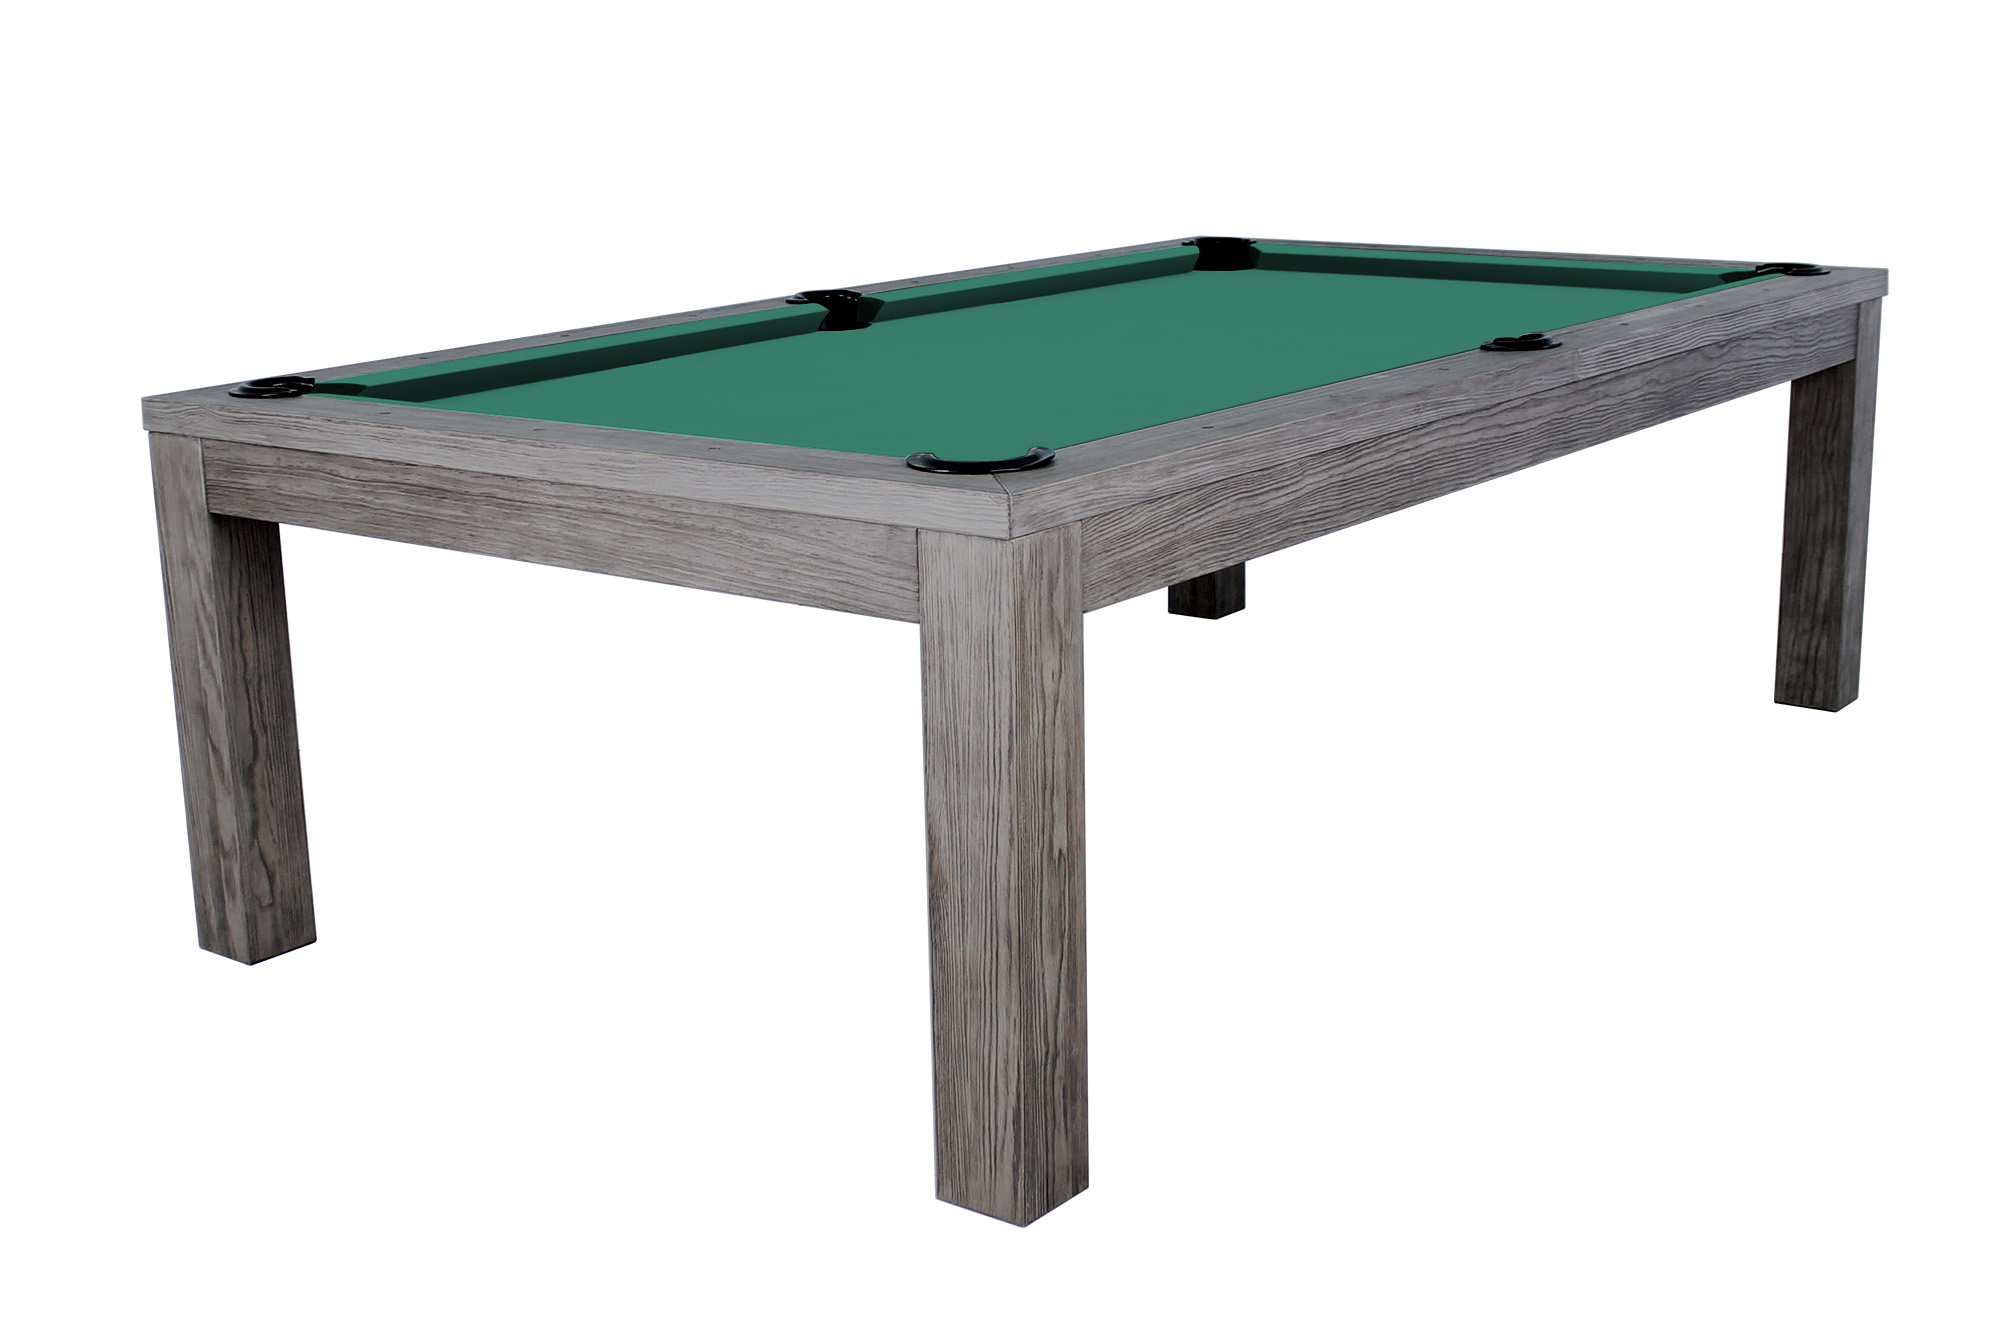 Tournament Blue Pool Table Cloth 9/' Set $25 Value Added SIMONIS 760 CLOTH